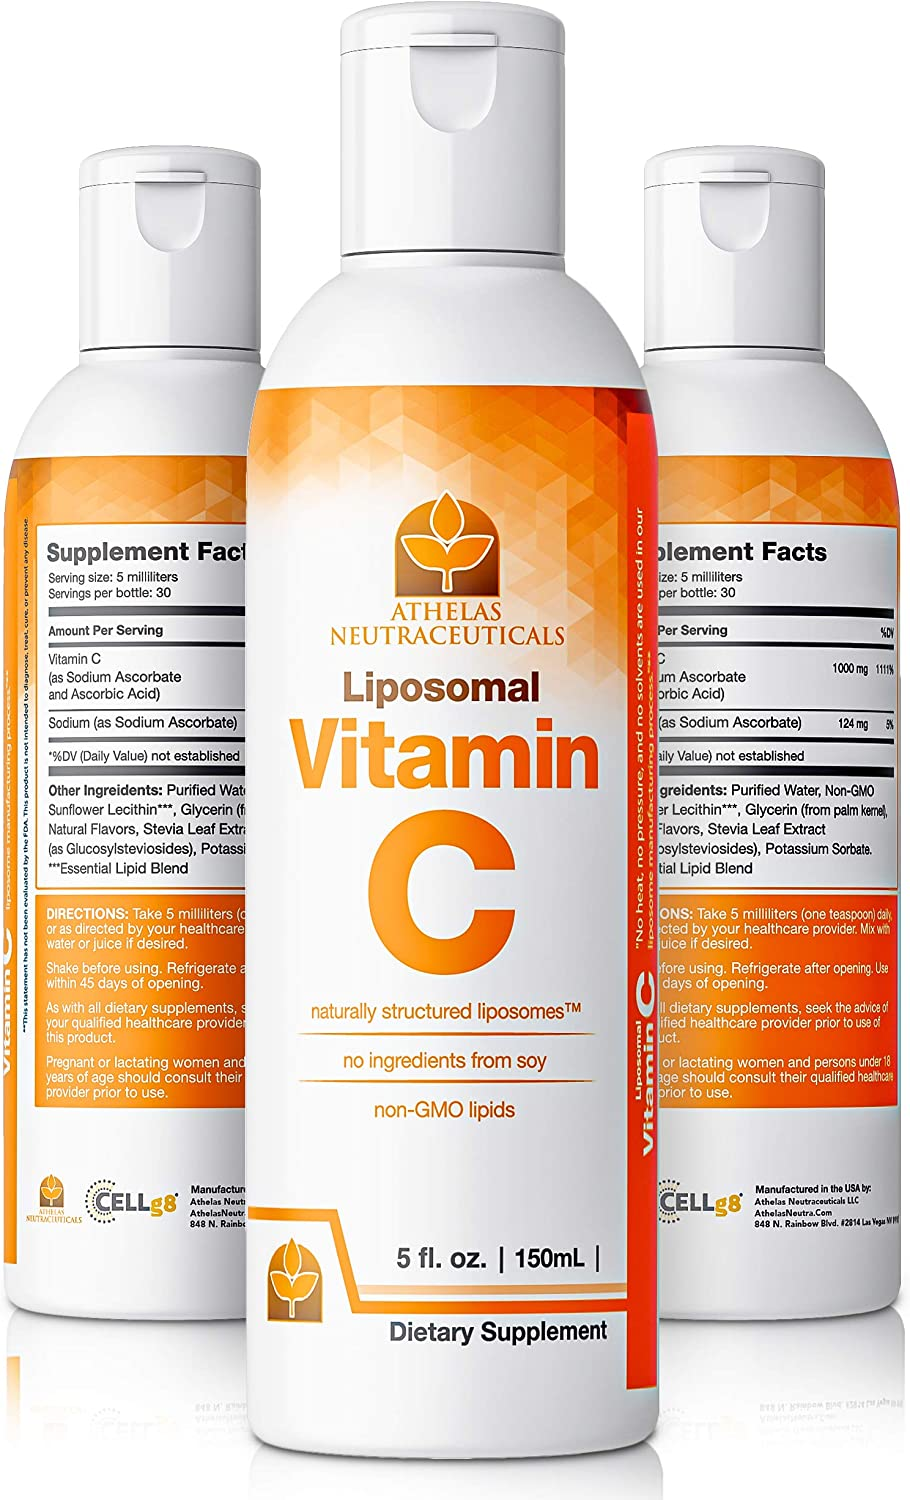 Liposomal Vitamin C Liquid Supplement - 1000mg Premium High Absorption Vitamin C - Easy to Take - No Stomach Upset - Premium Liquid Vitamin C 1000mg - Made in USA - Mixes Easily with Liquid